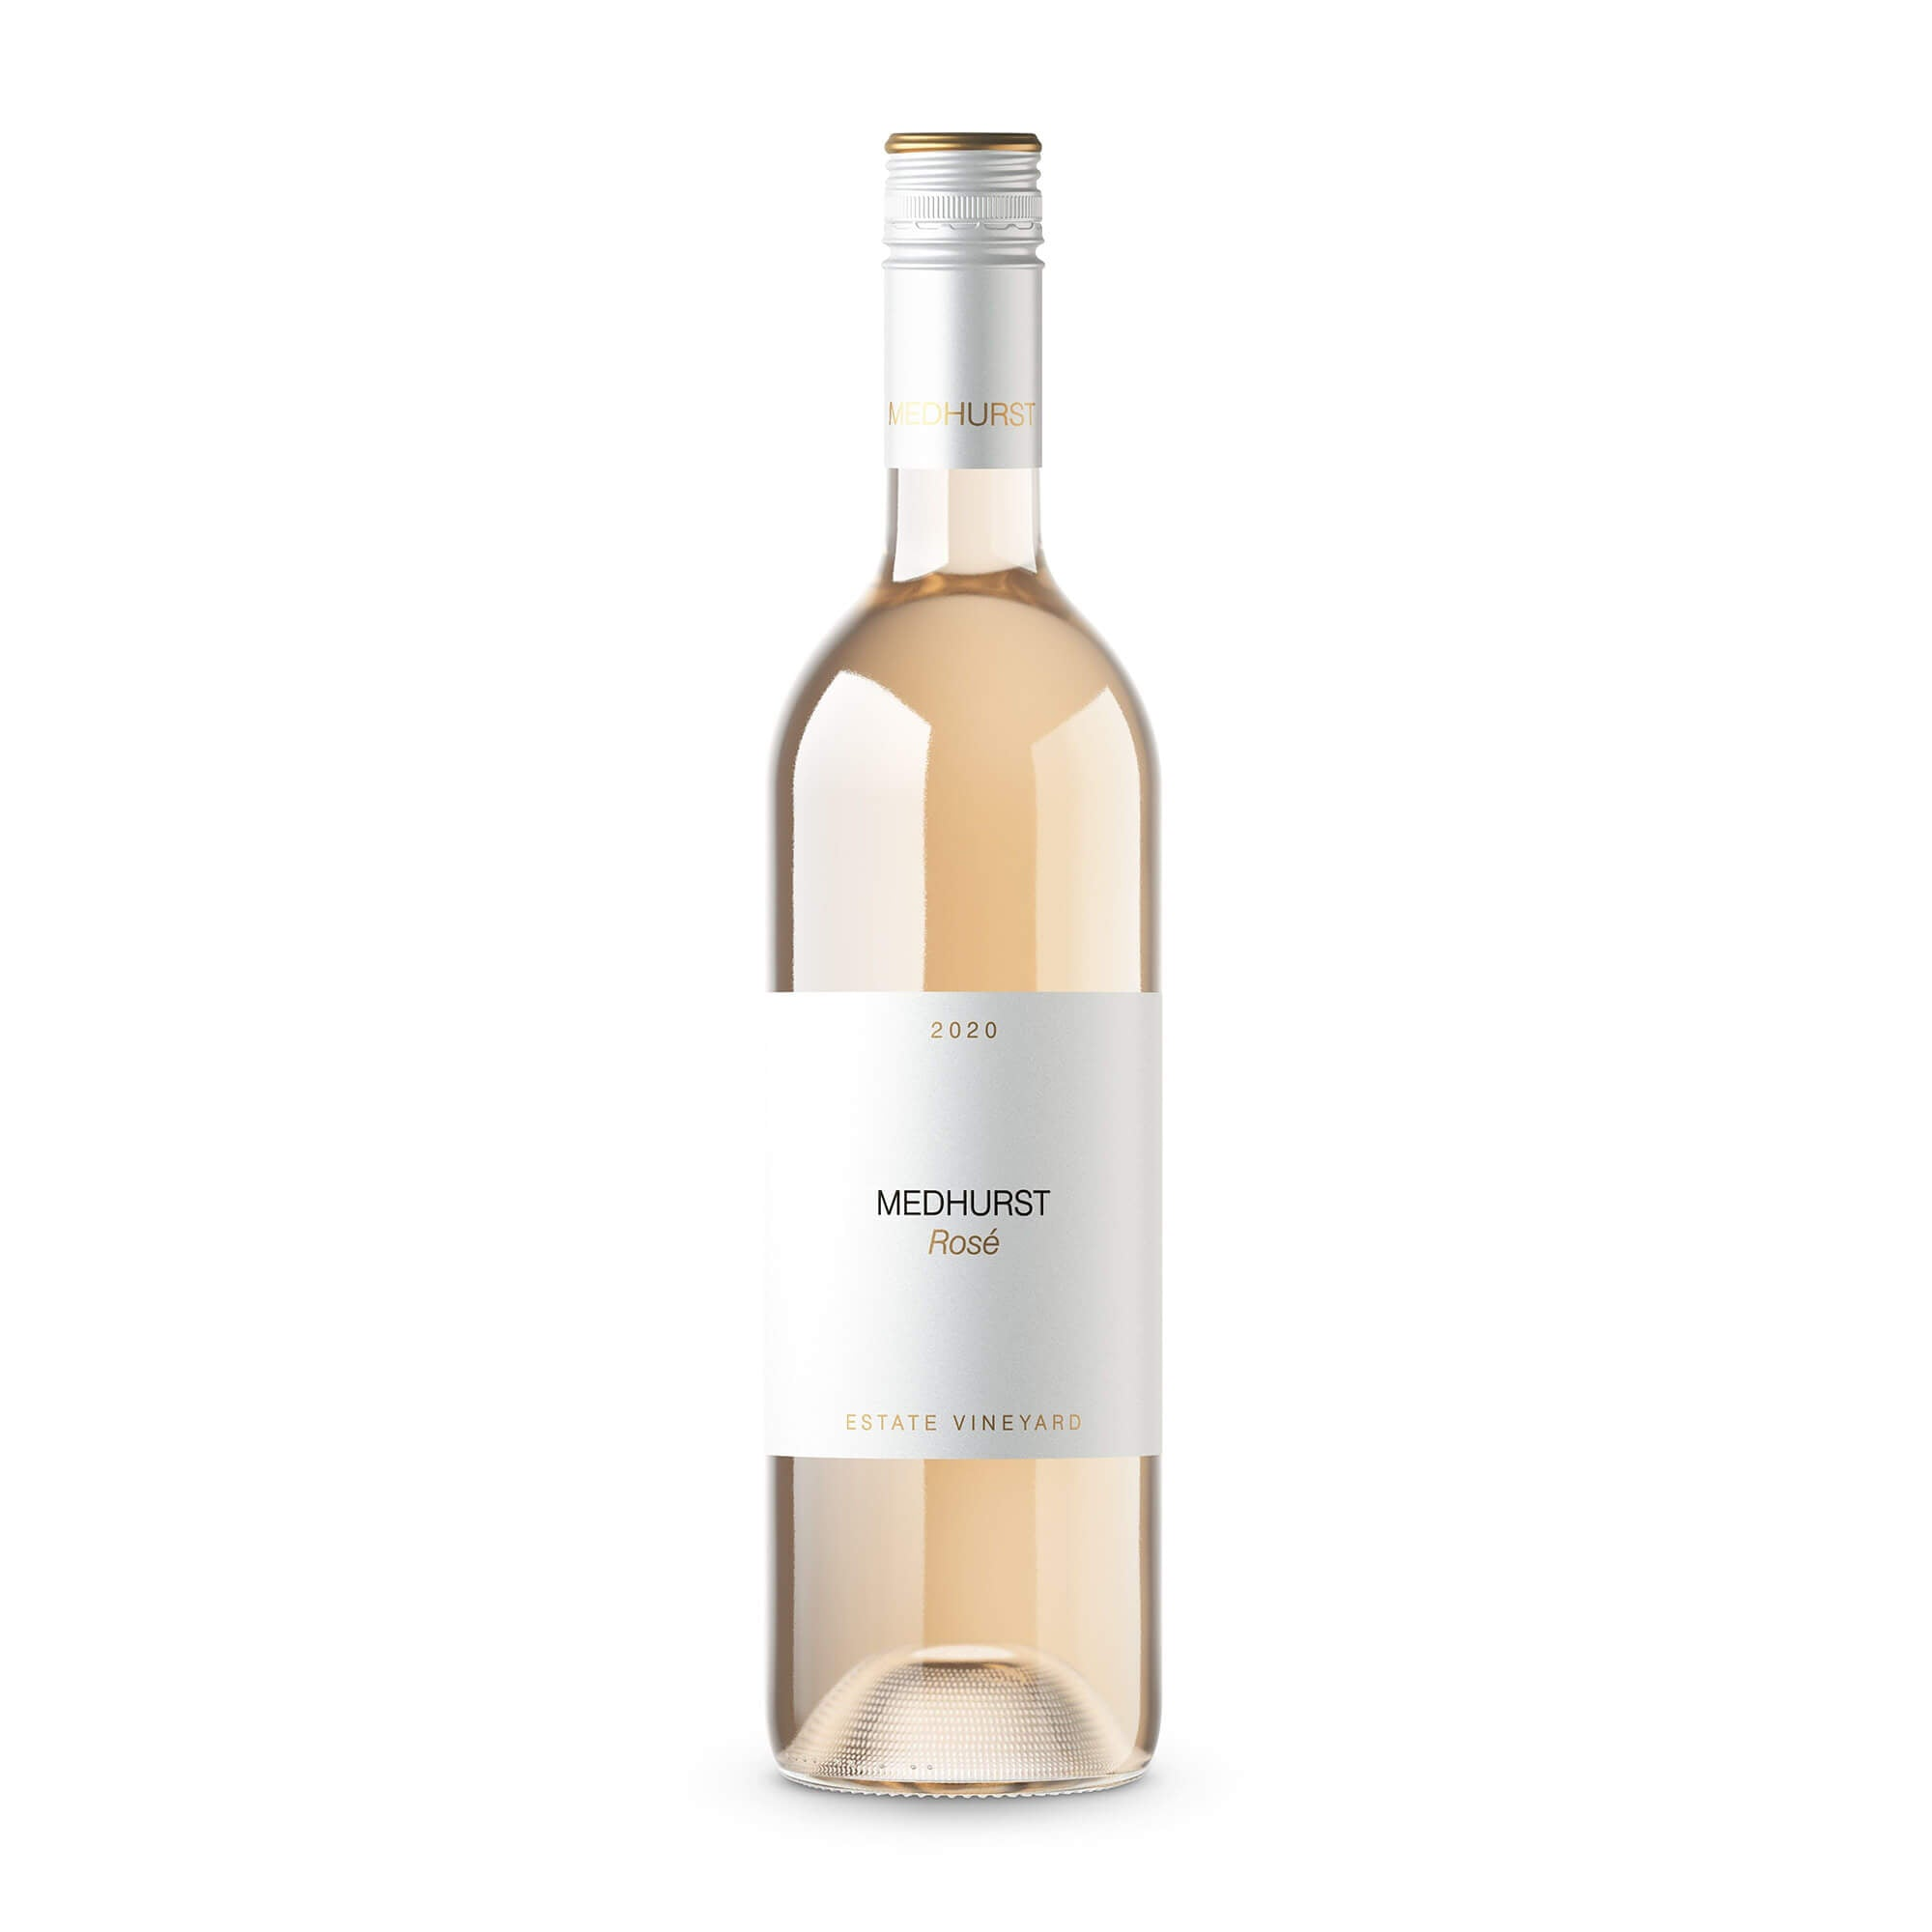 Medhurst Estate Vineyard Rose 2020